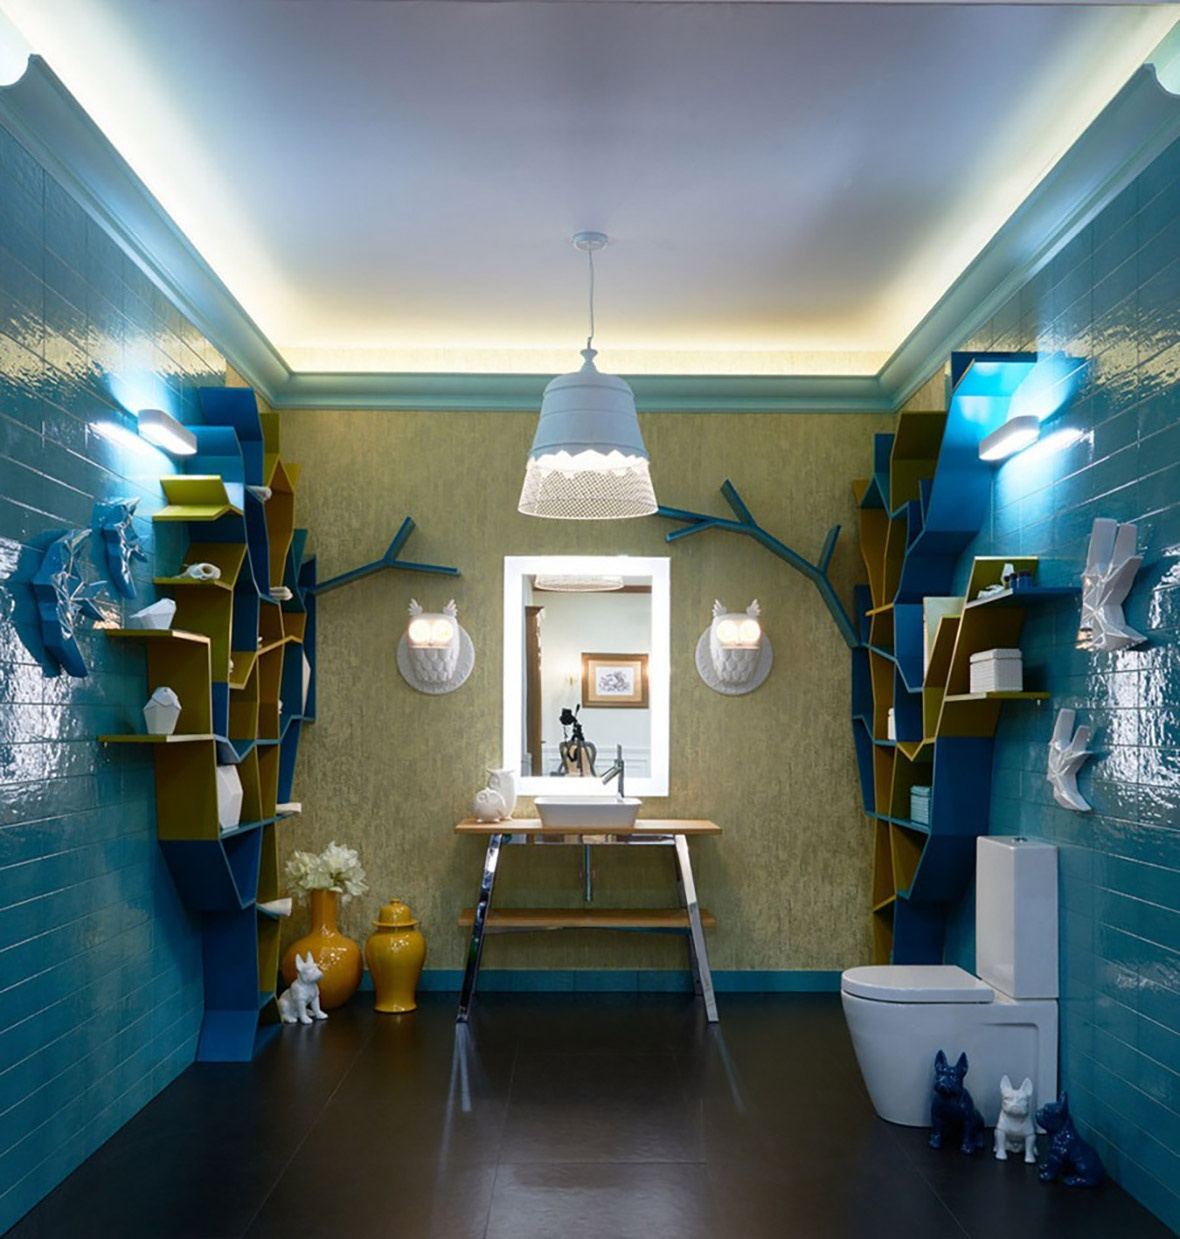 1-creative-bathroom-interior-design-eclectic-eco-style-shelving-unit-tree-shaped-turquoise-blue-glazed-wall-tiles-golden-wallpaper-omexco-floor-standing-vanity-u_01